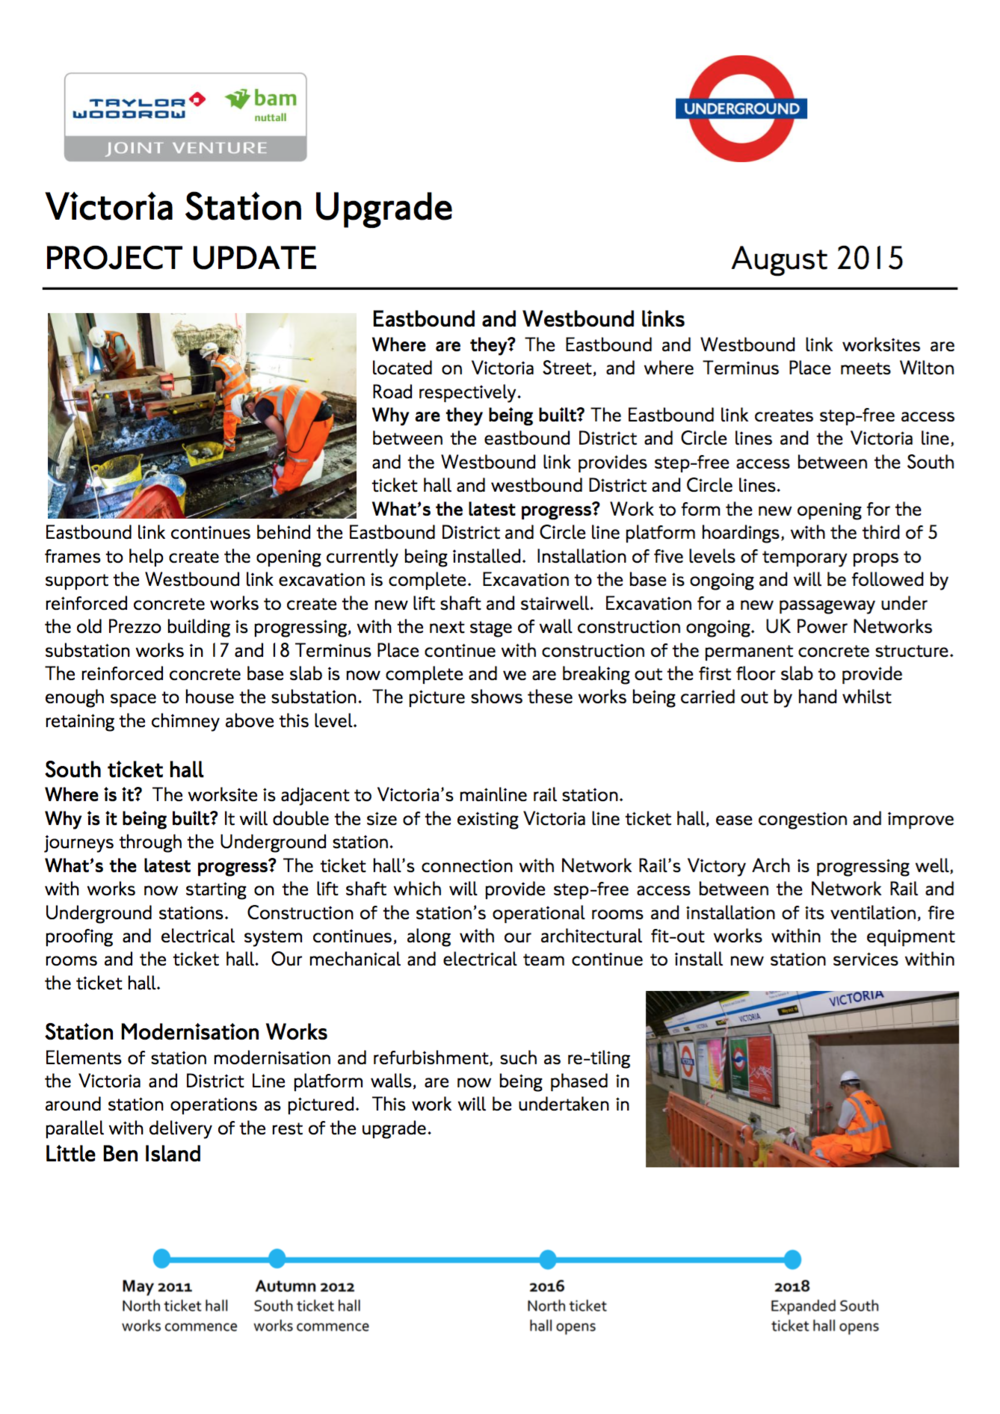 Victoria Station Update page one